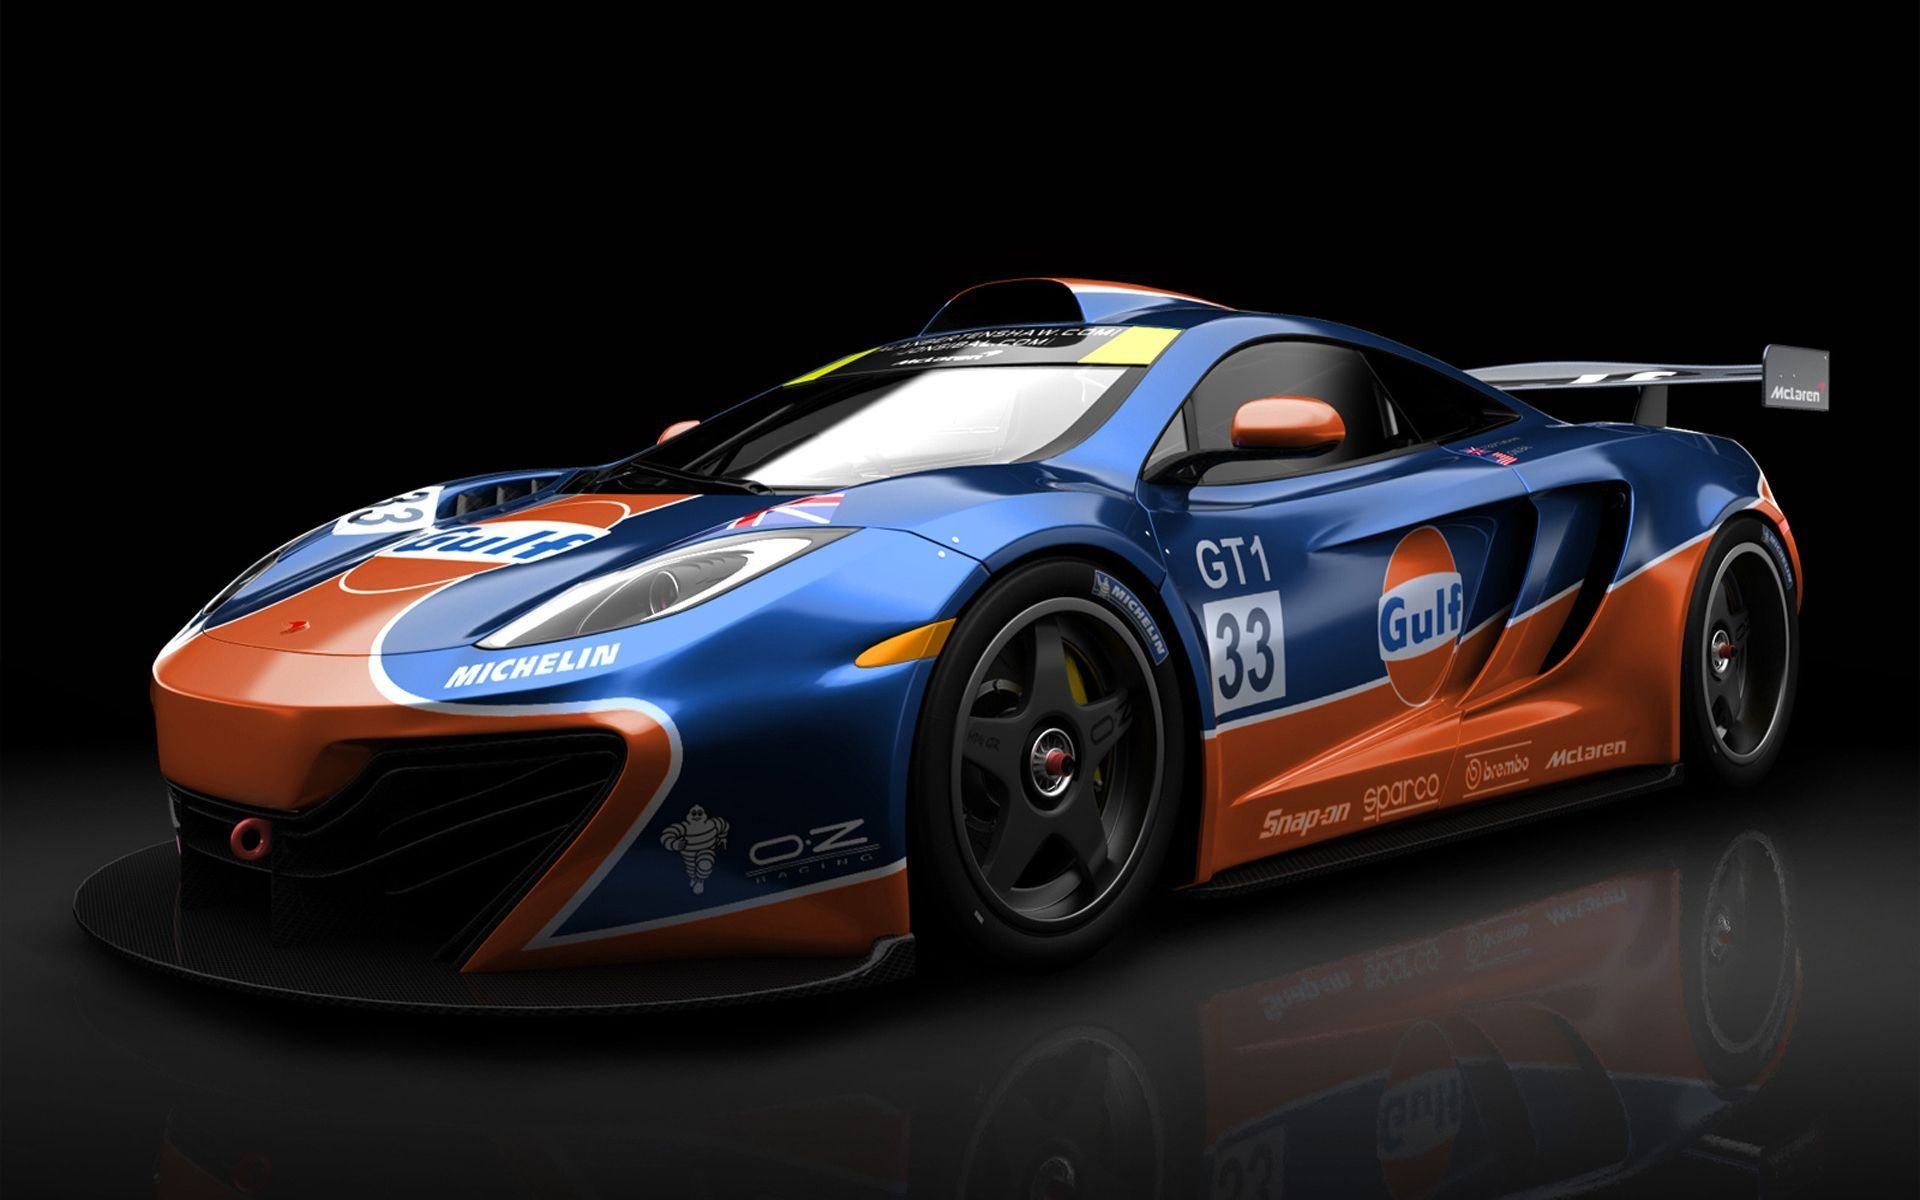 Latest 25 New Sports Cars Wallpapers Free Download Car Free Download